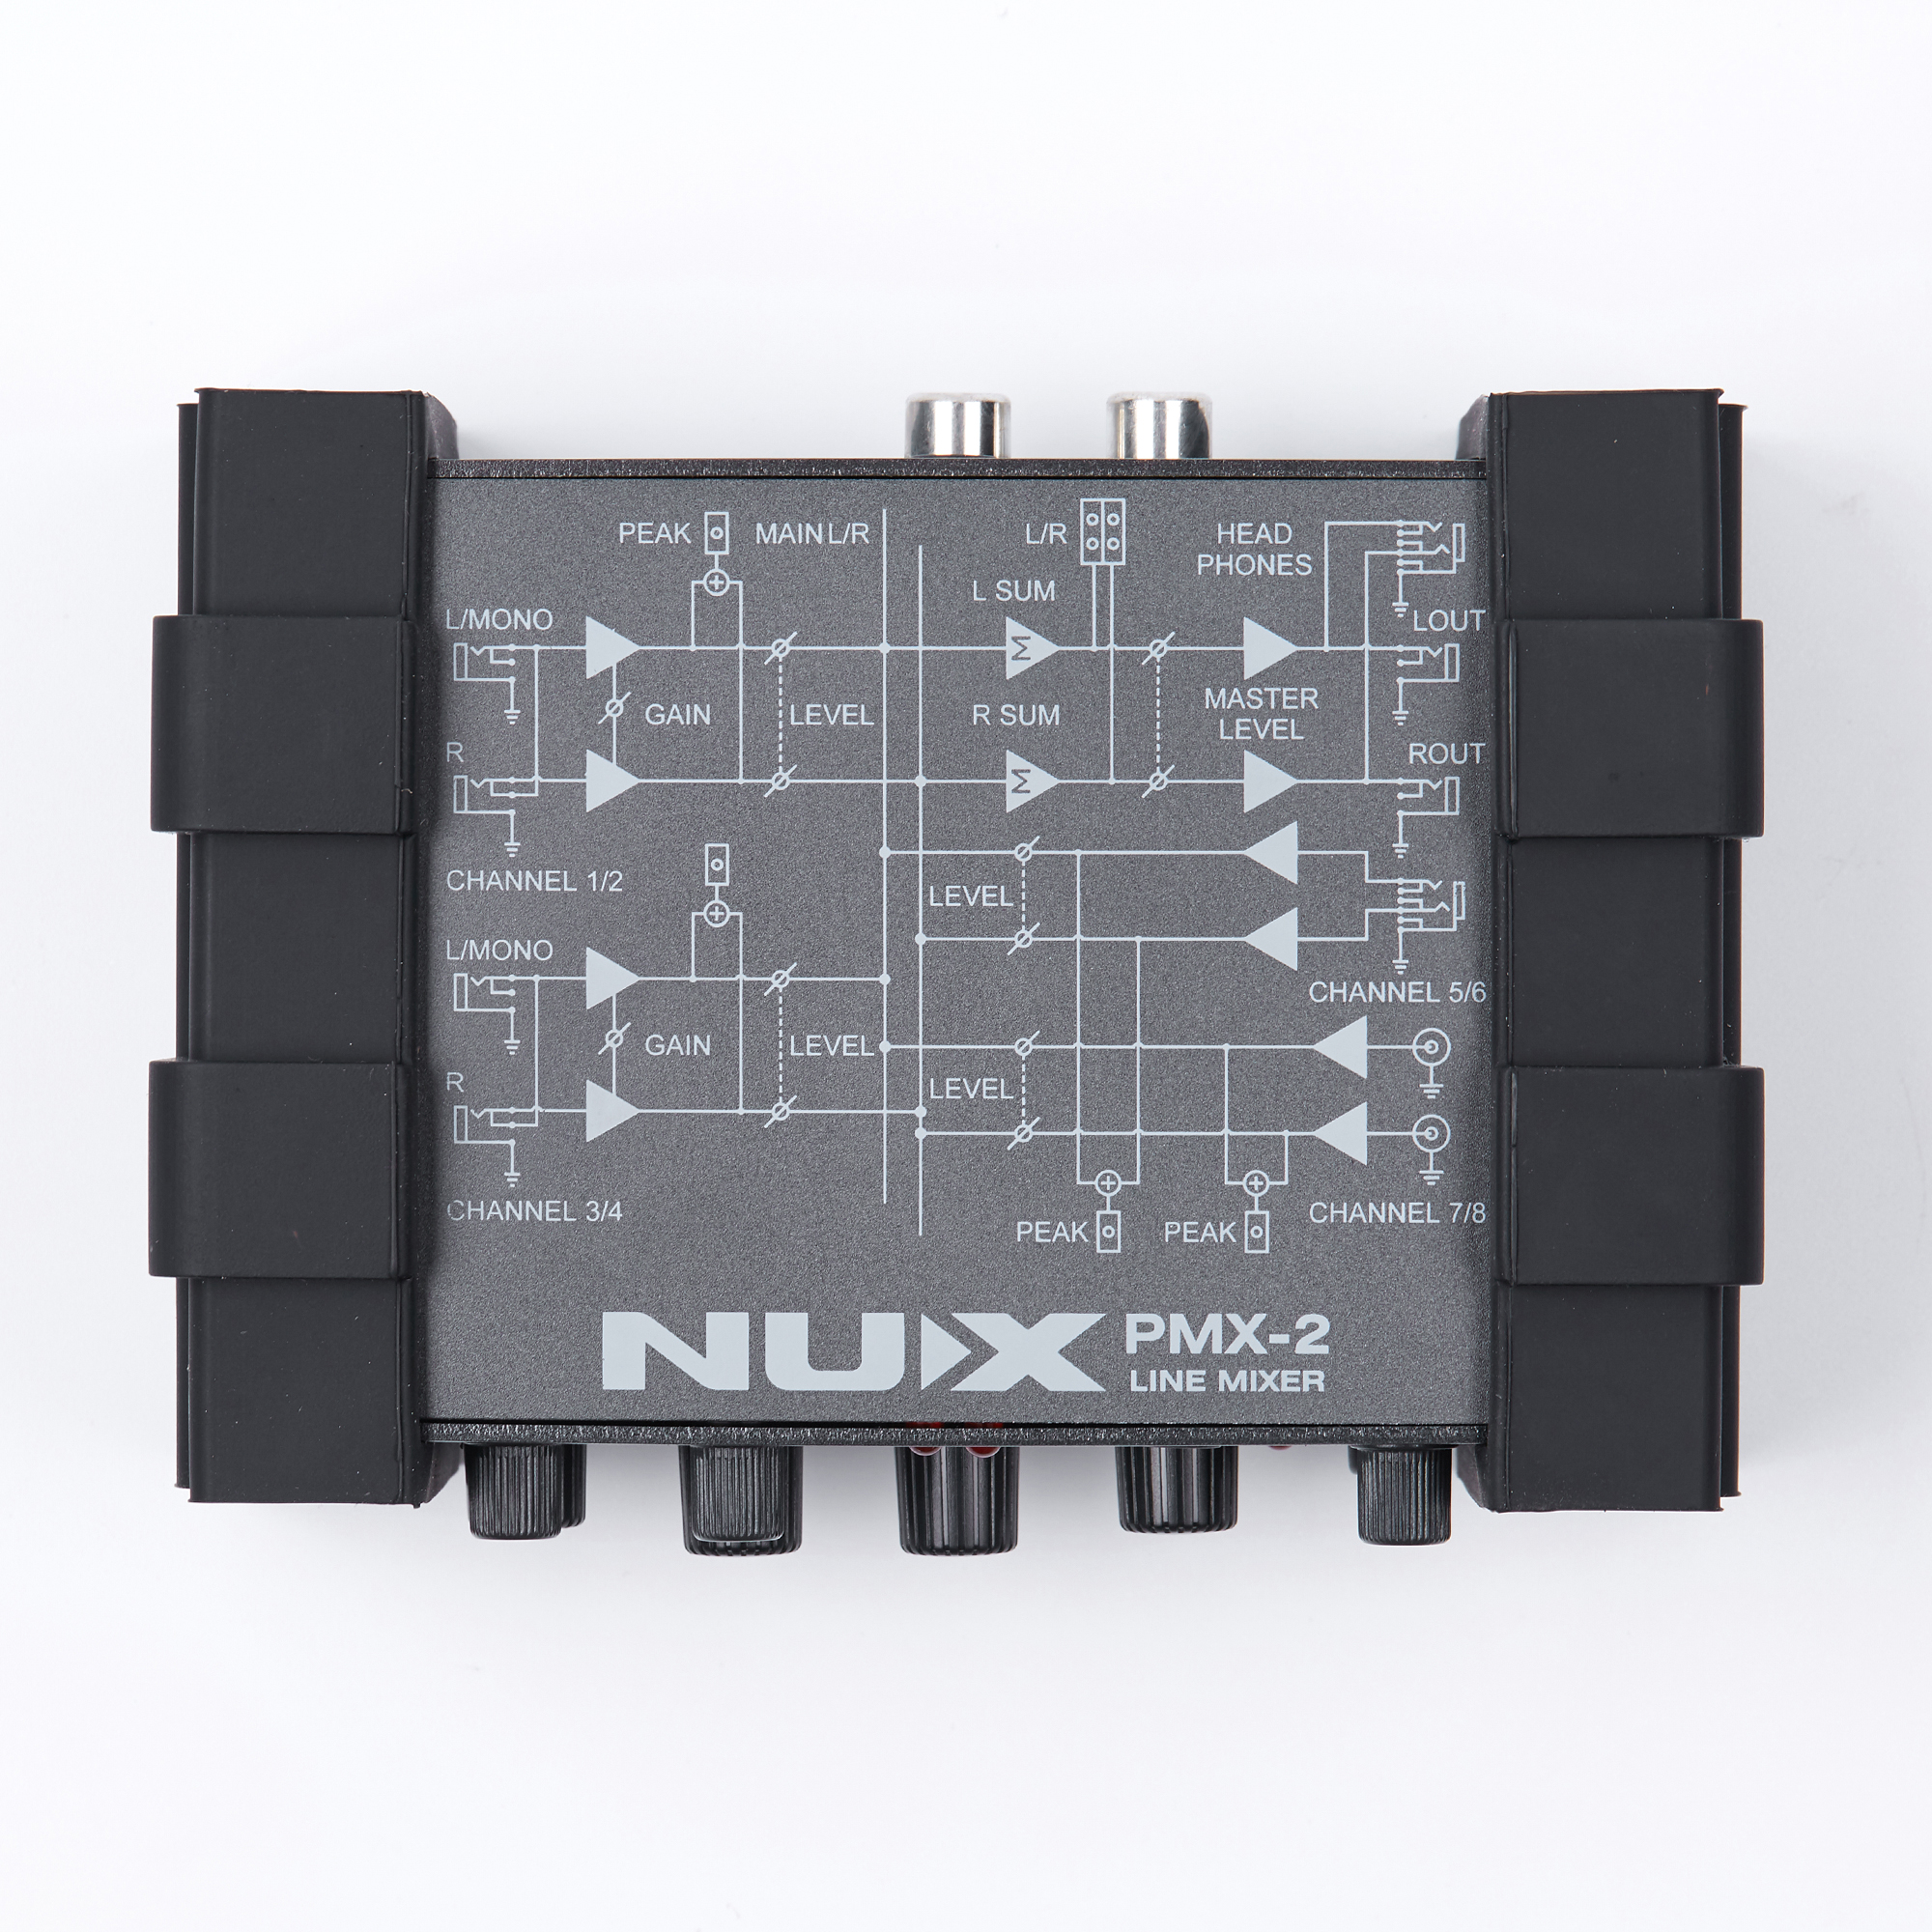 Gain Control 8 Inputs and 2 Outputs NUX PMX-2 Multi-Channel Mini Mixer 30 Musical Instruments Accessories for Guitar Bass Player mysql从入门到精通(视频教学版)